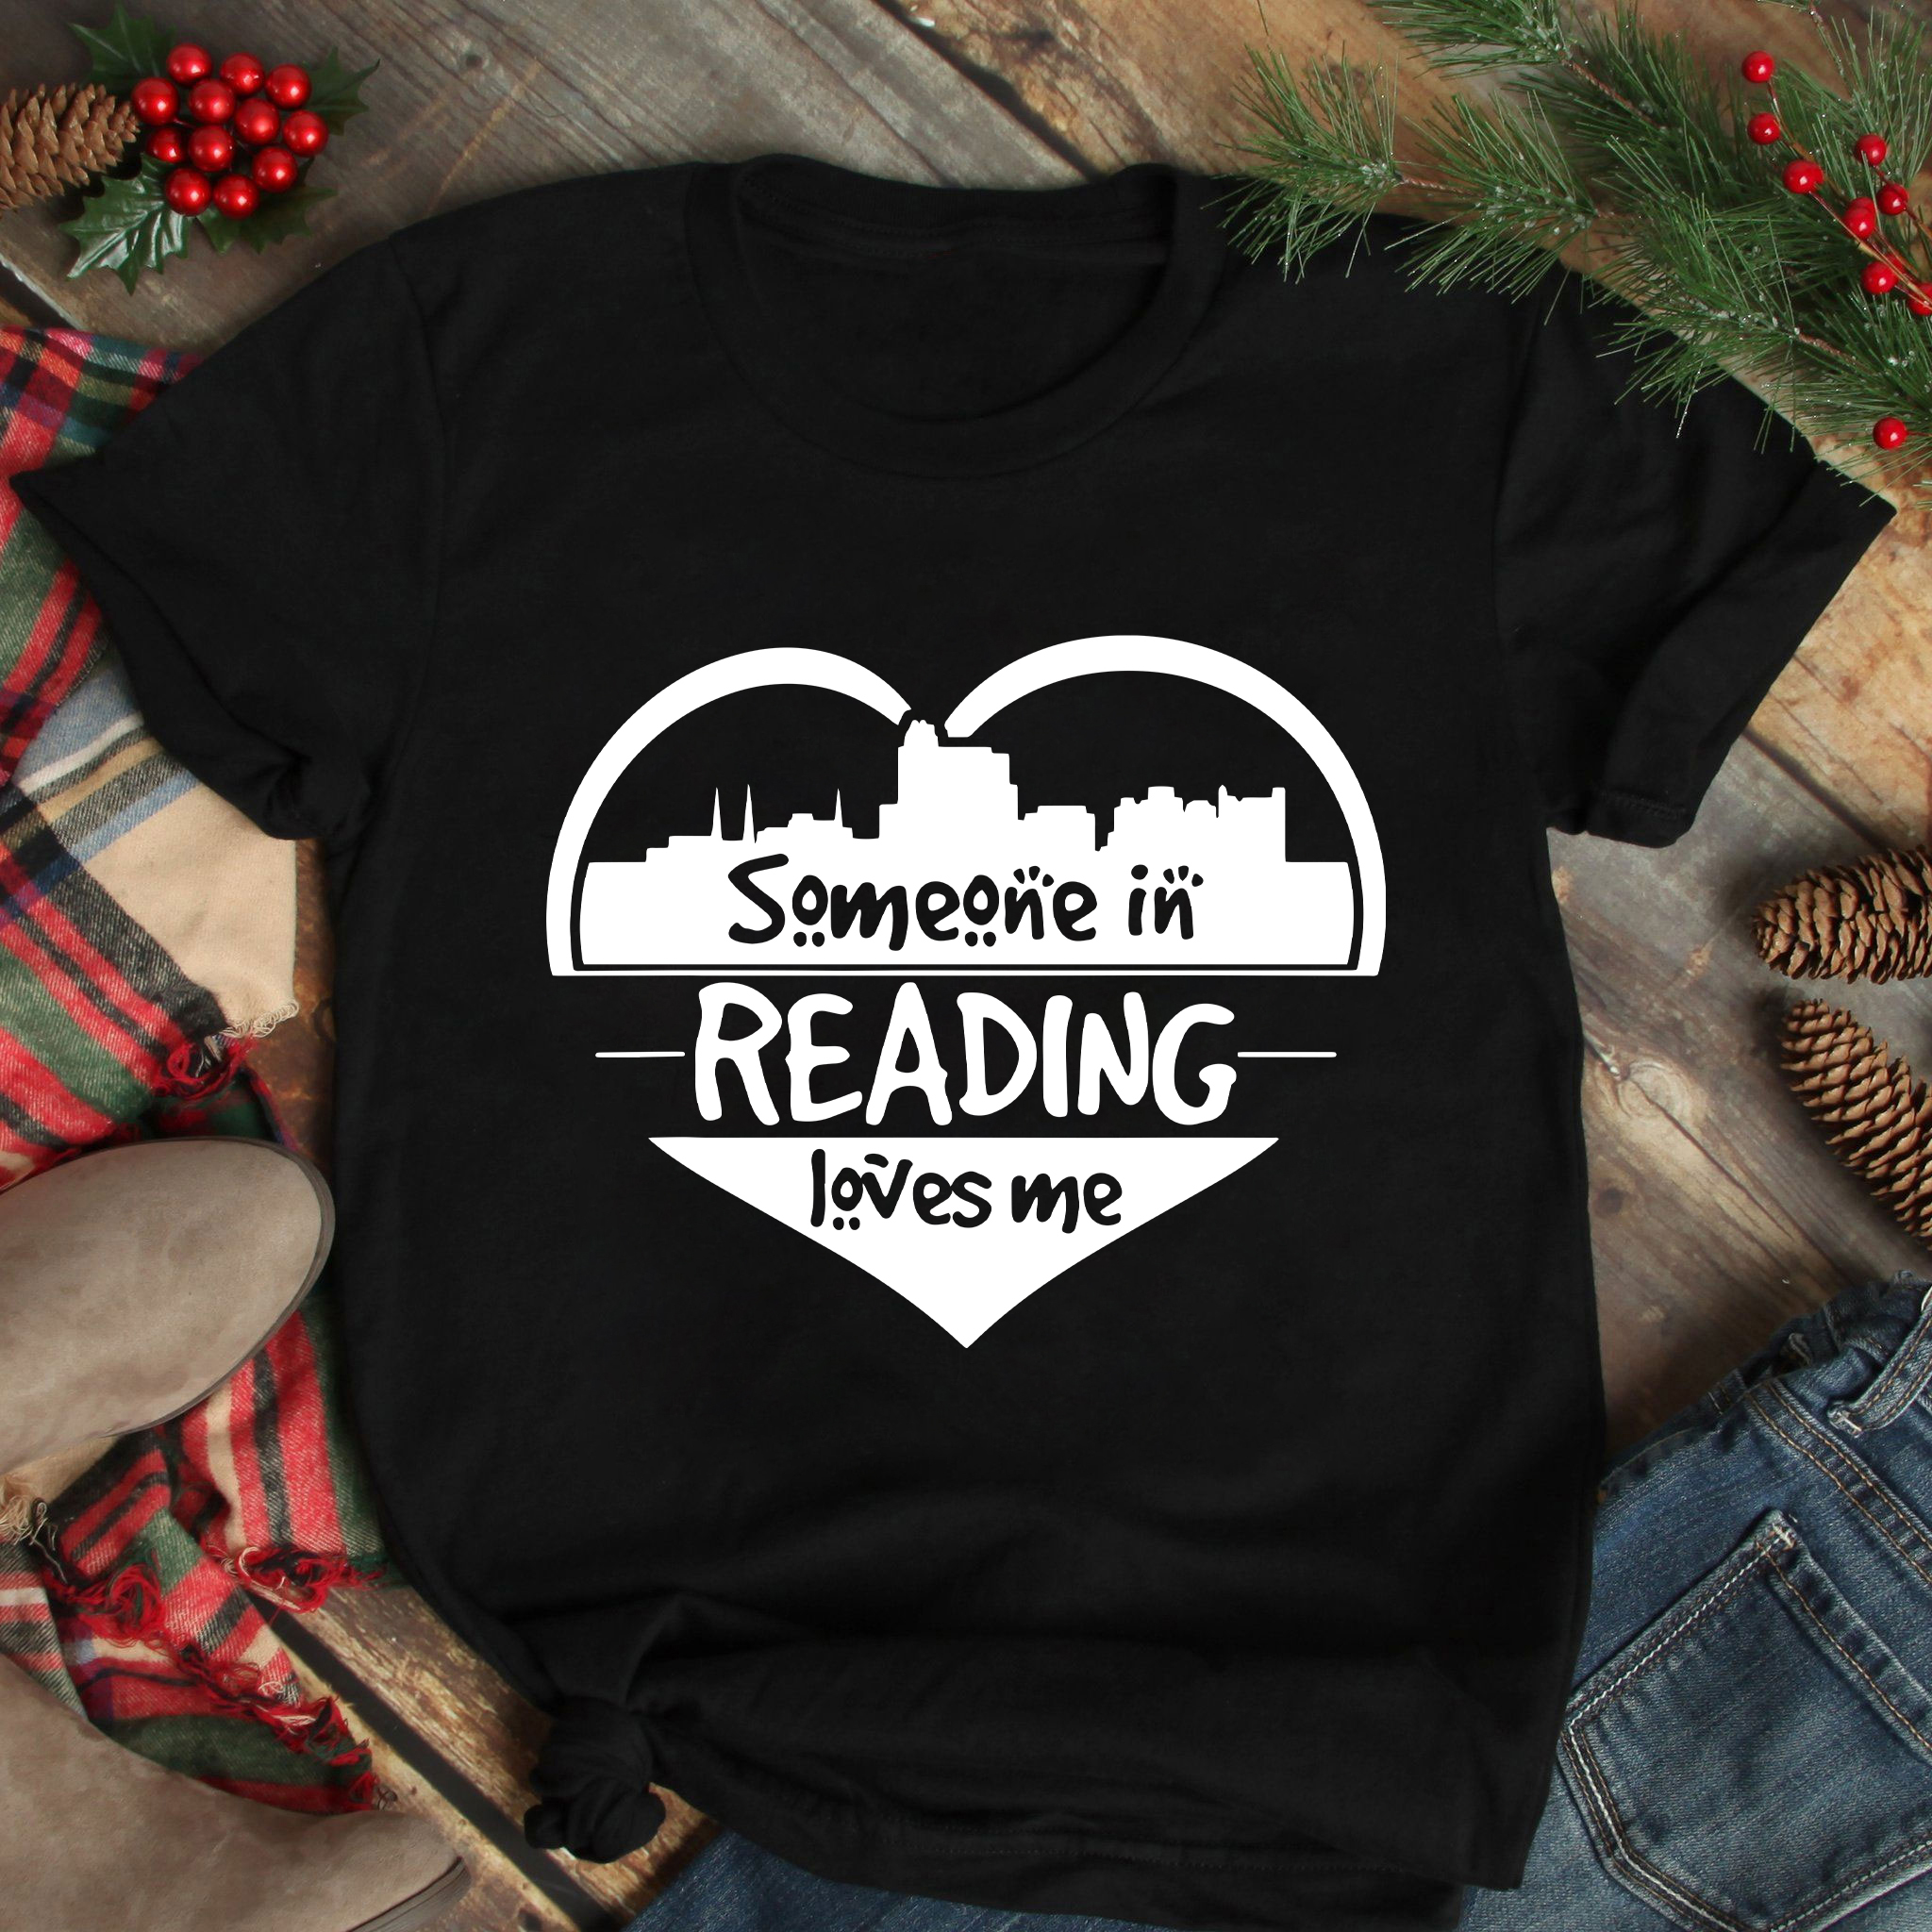 Book Shirt Someone In Reading Loves Me Heart